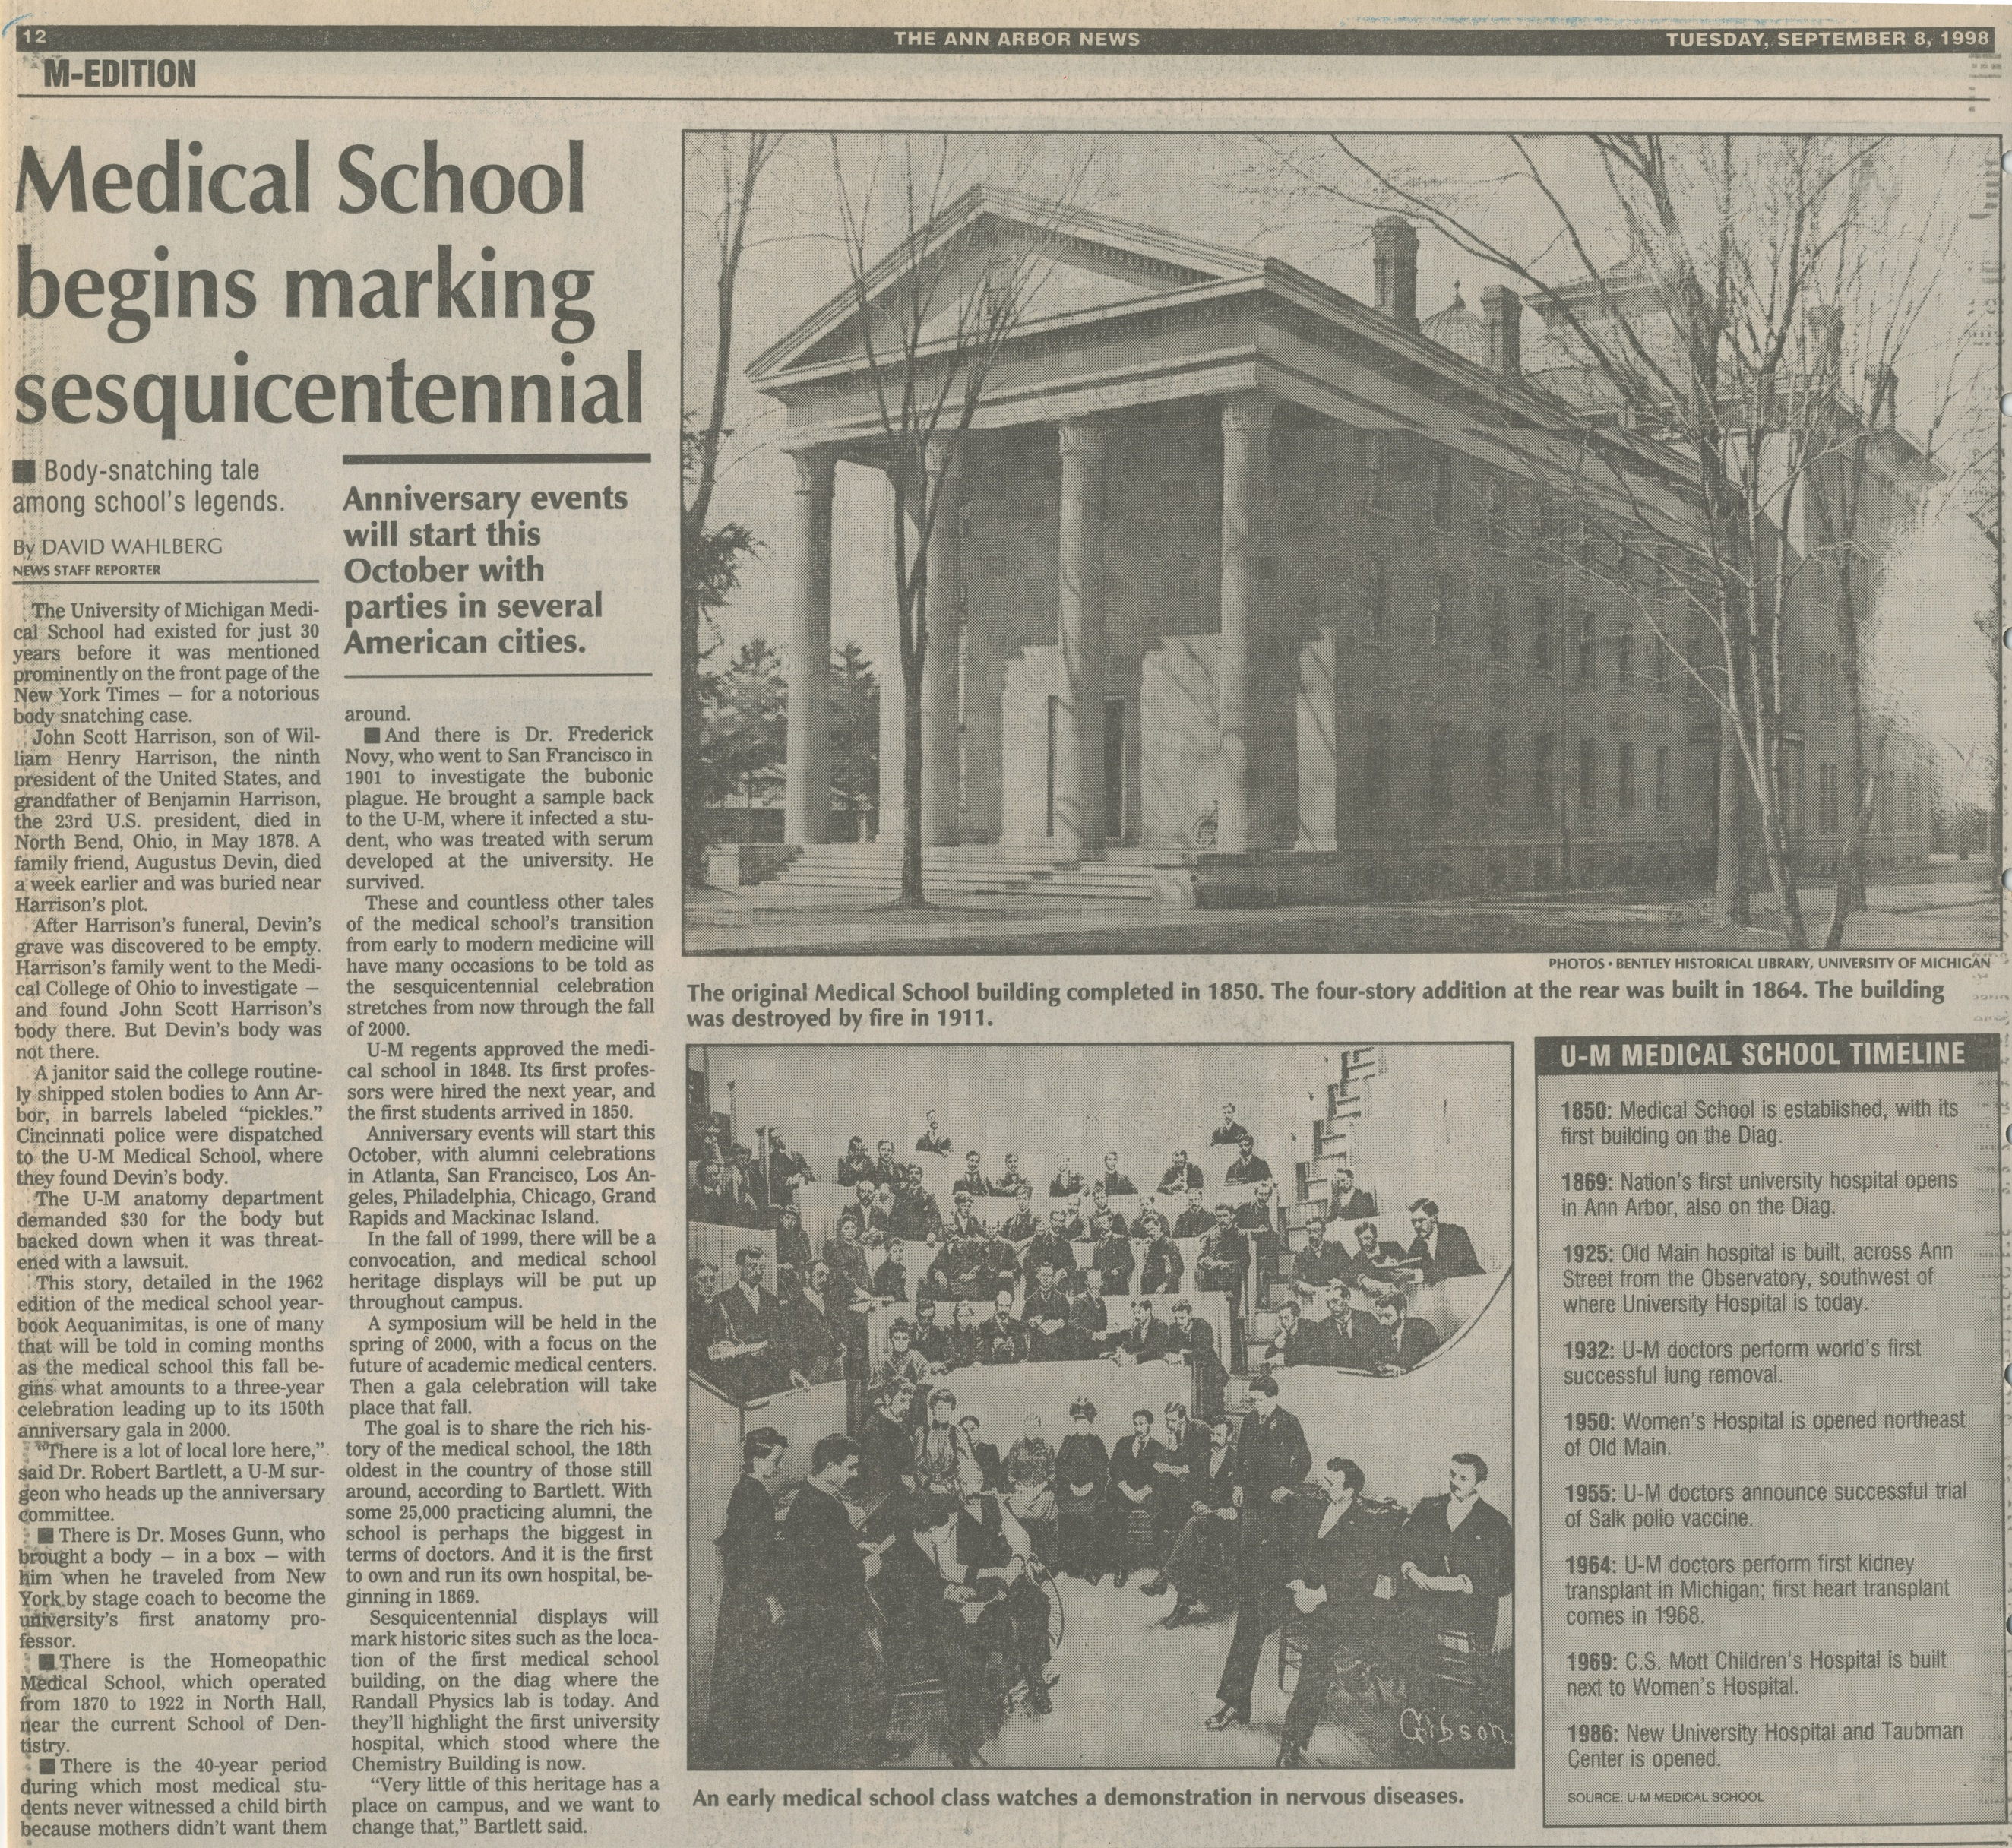 Medical School Begins Marking Sesquicentennial image